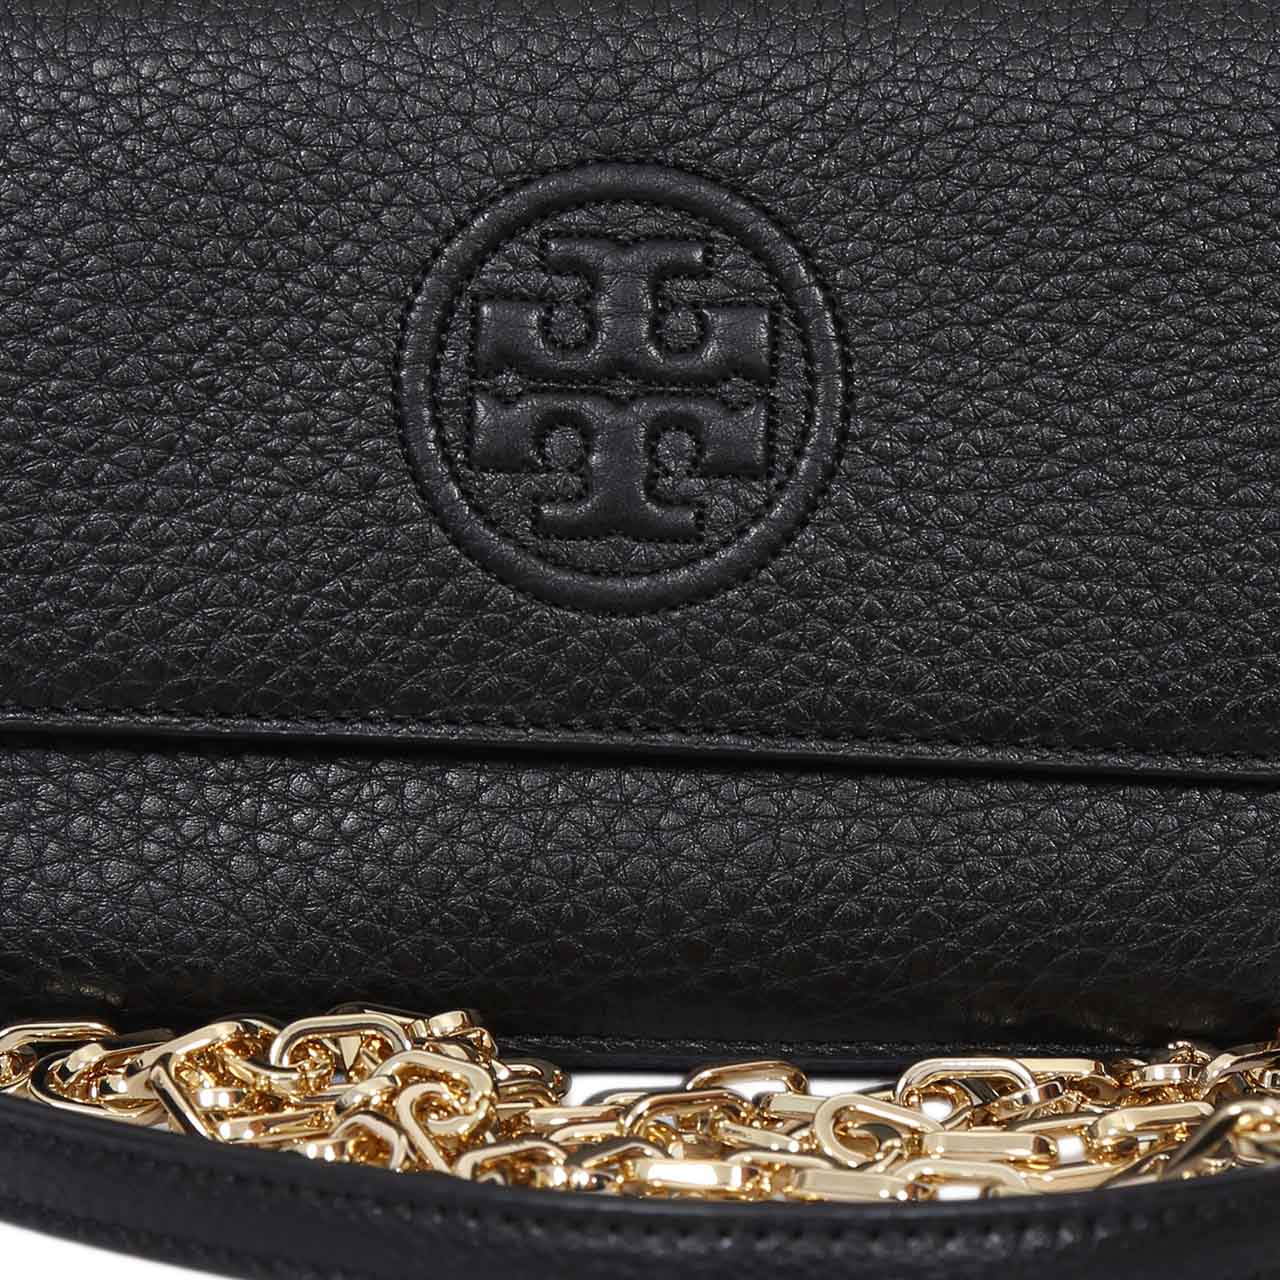 TORY BURCH BOMBE MINI CROSS-BODY BAG